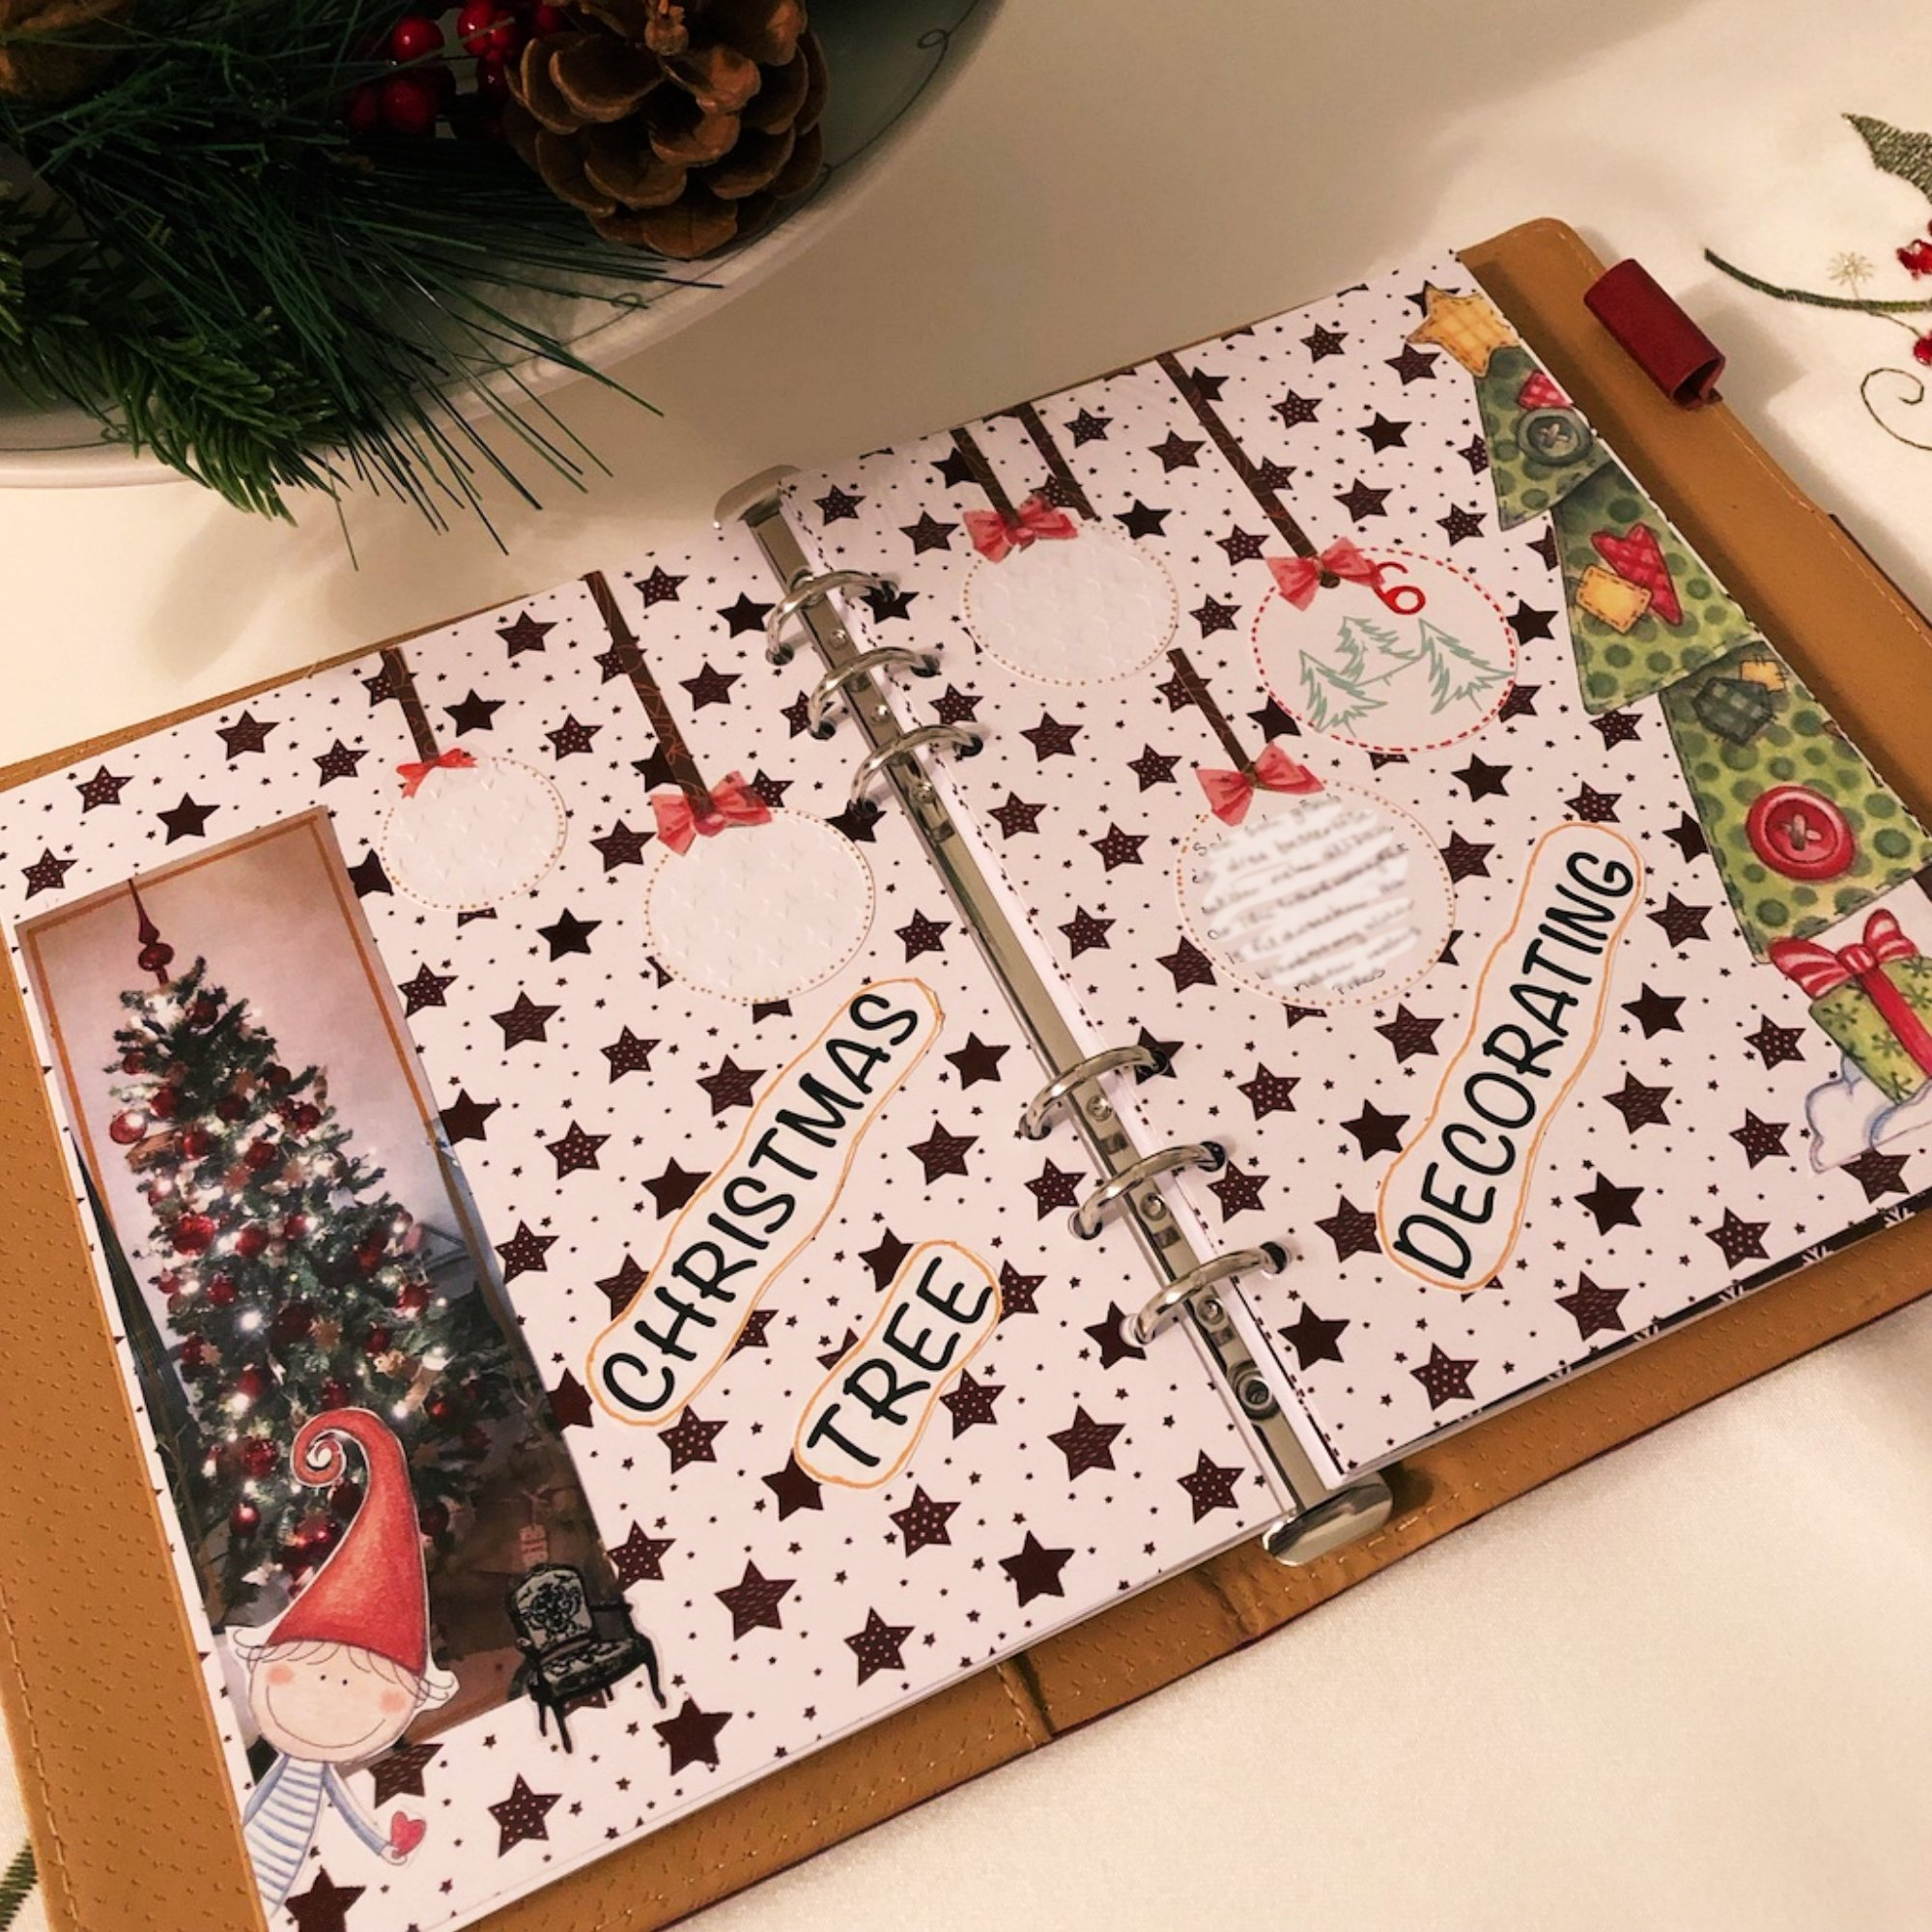 Creative journaling - December daily memories Day 6 - itstartswithacoffee.com #creativejournaling #journaling #daily